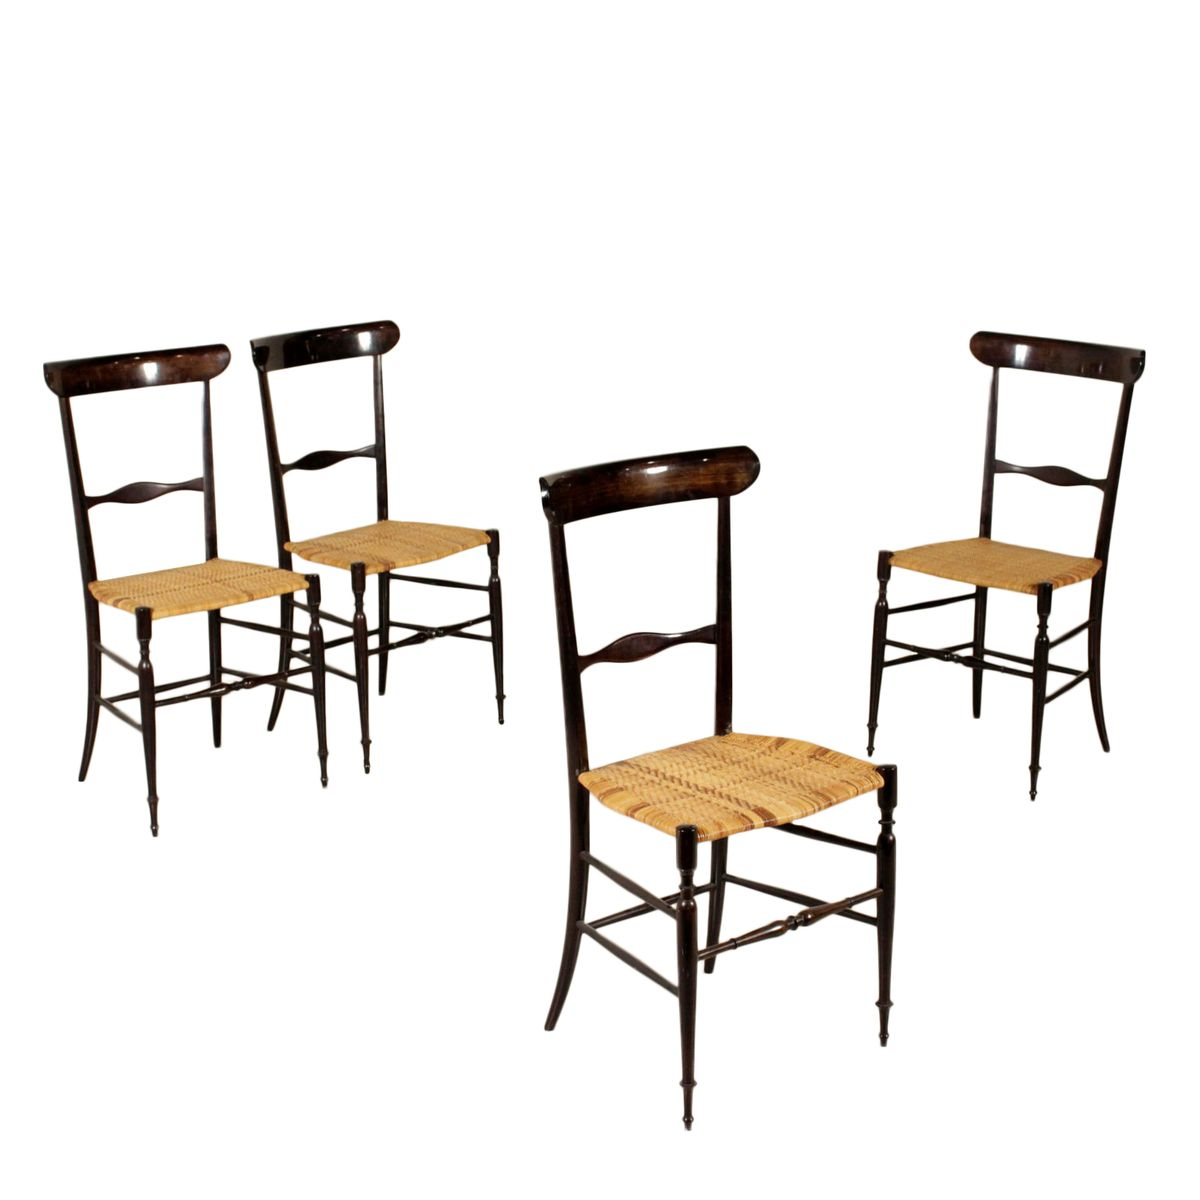 mid century chiavari st hle aus lackiertem holz 4 er set bei pamono kaufen. Black Bedroom Furniture Sets. Home Design Ideas